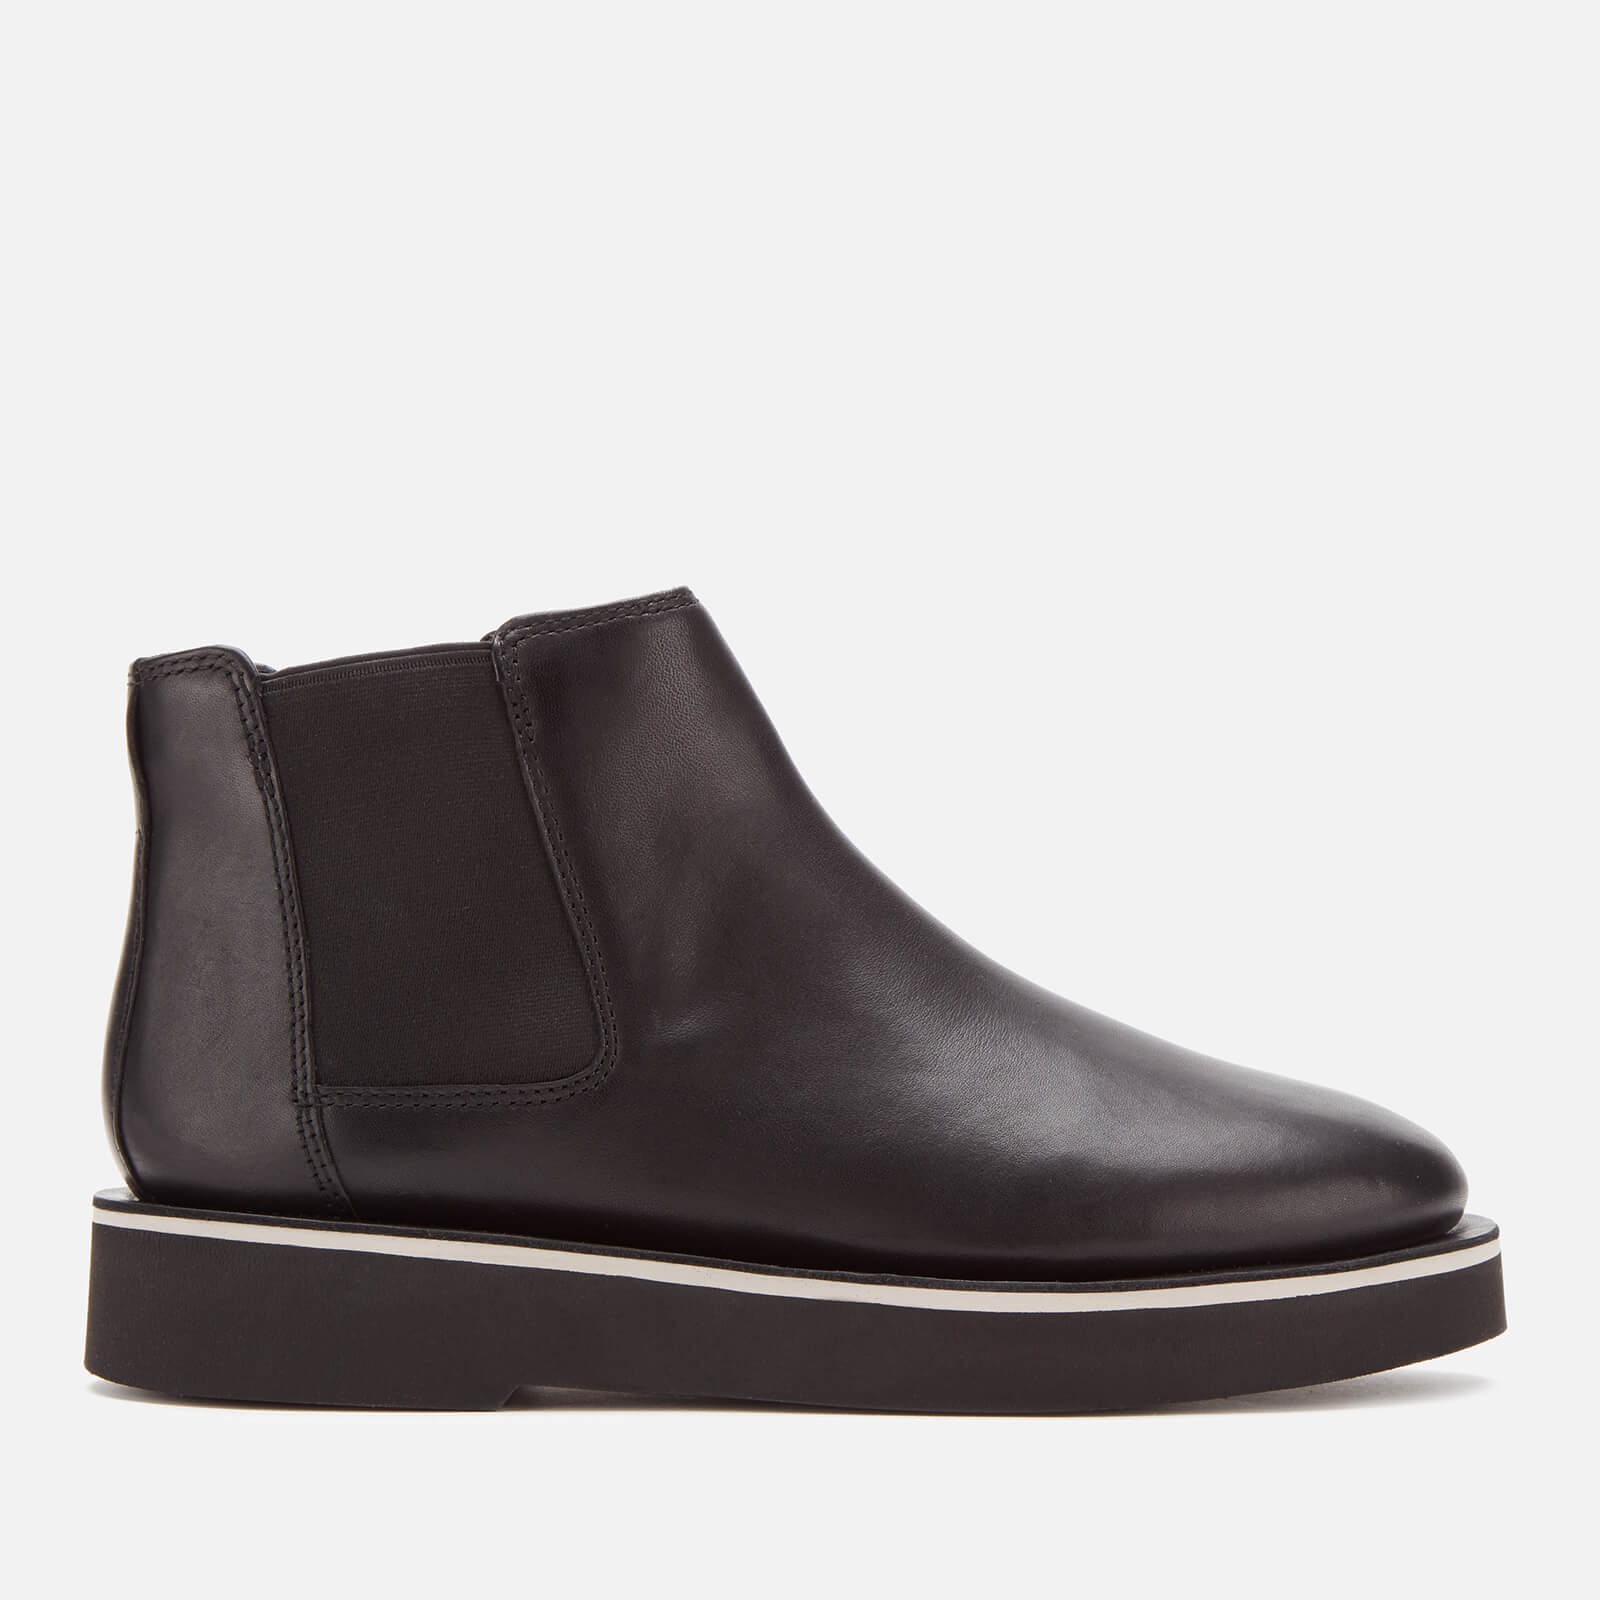 Camper Women's Tyra Leather Chelsea Boots - Black